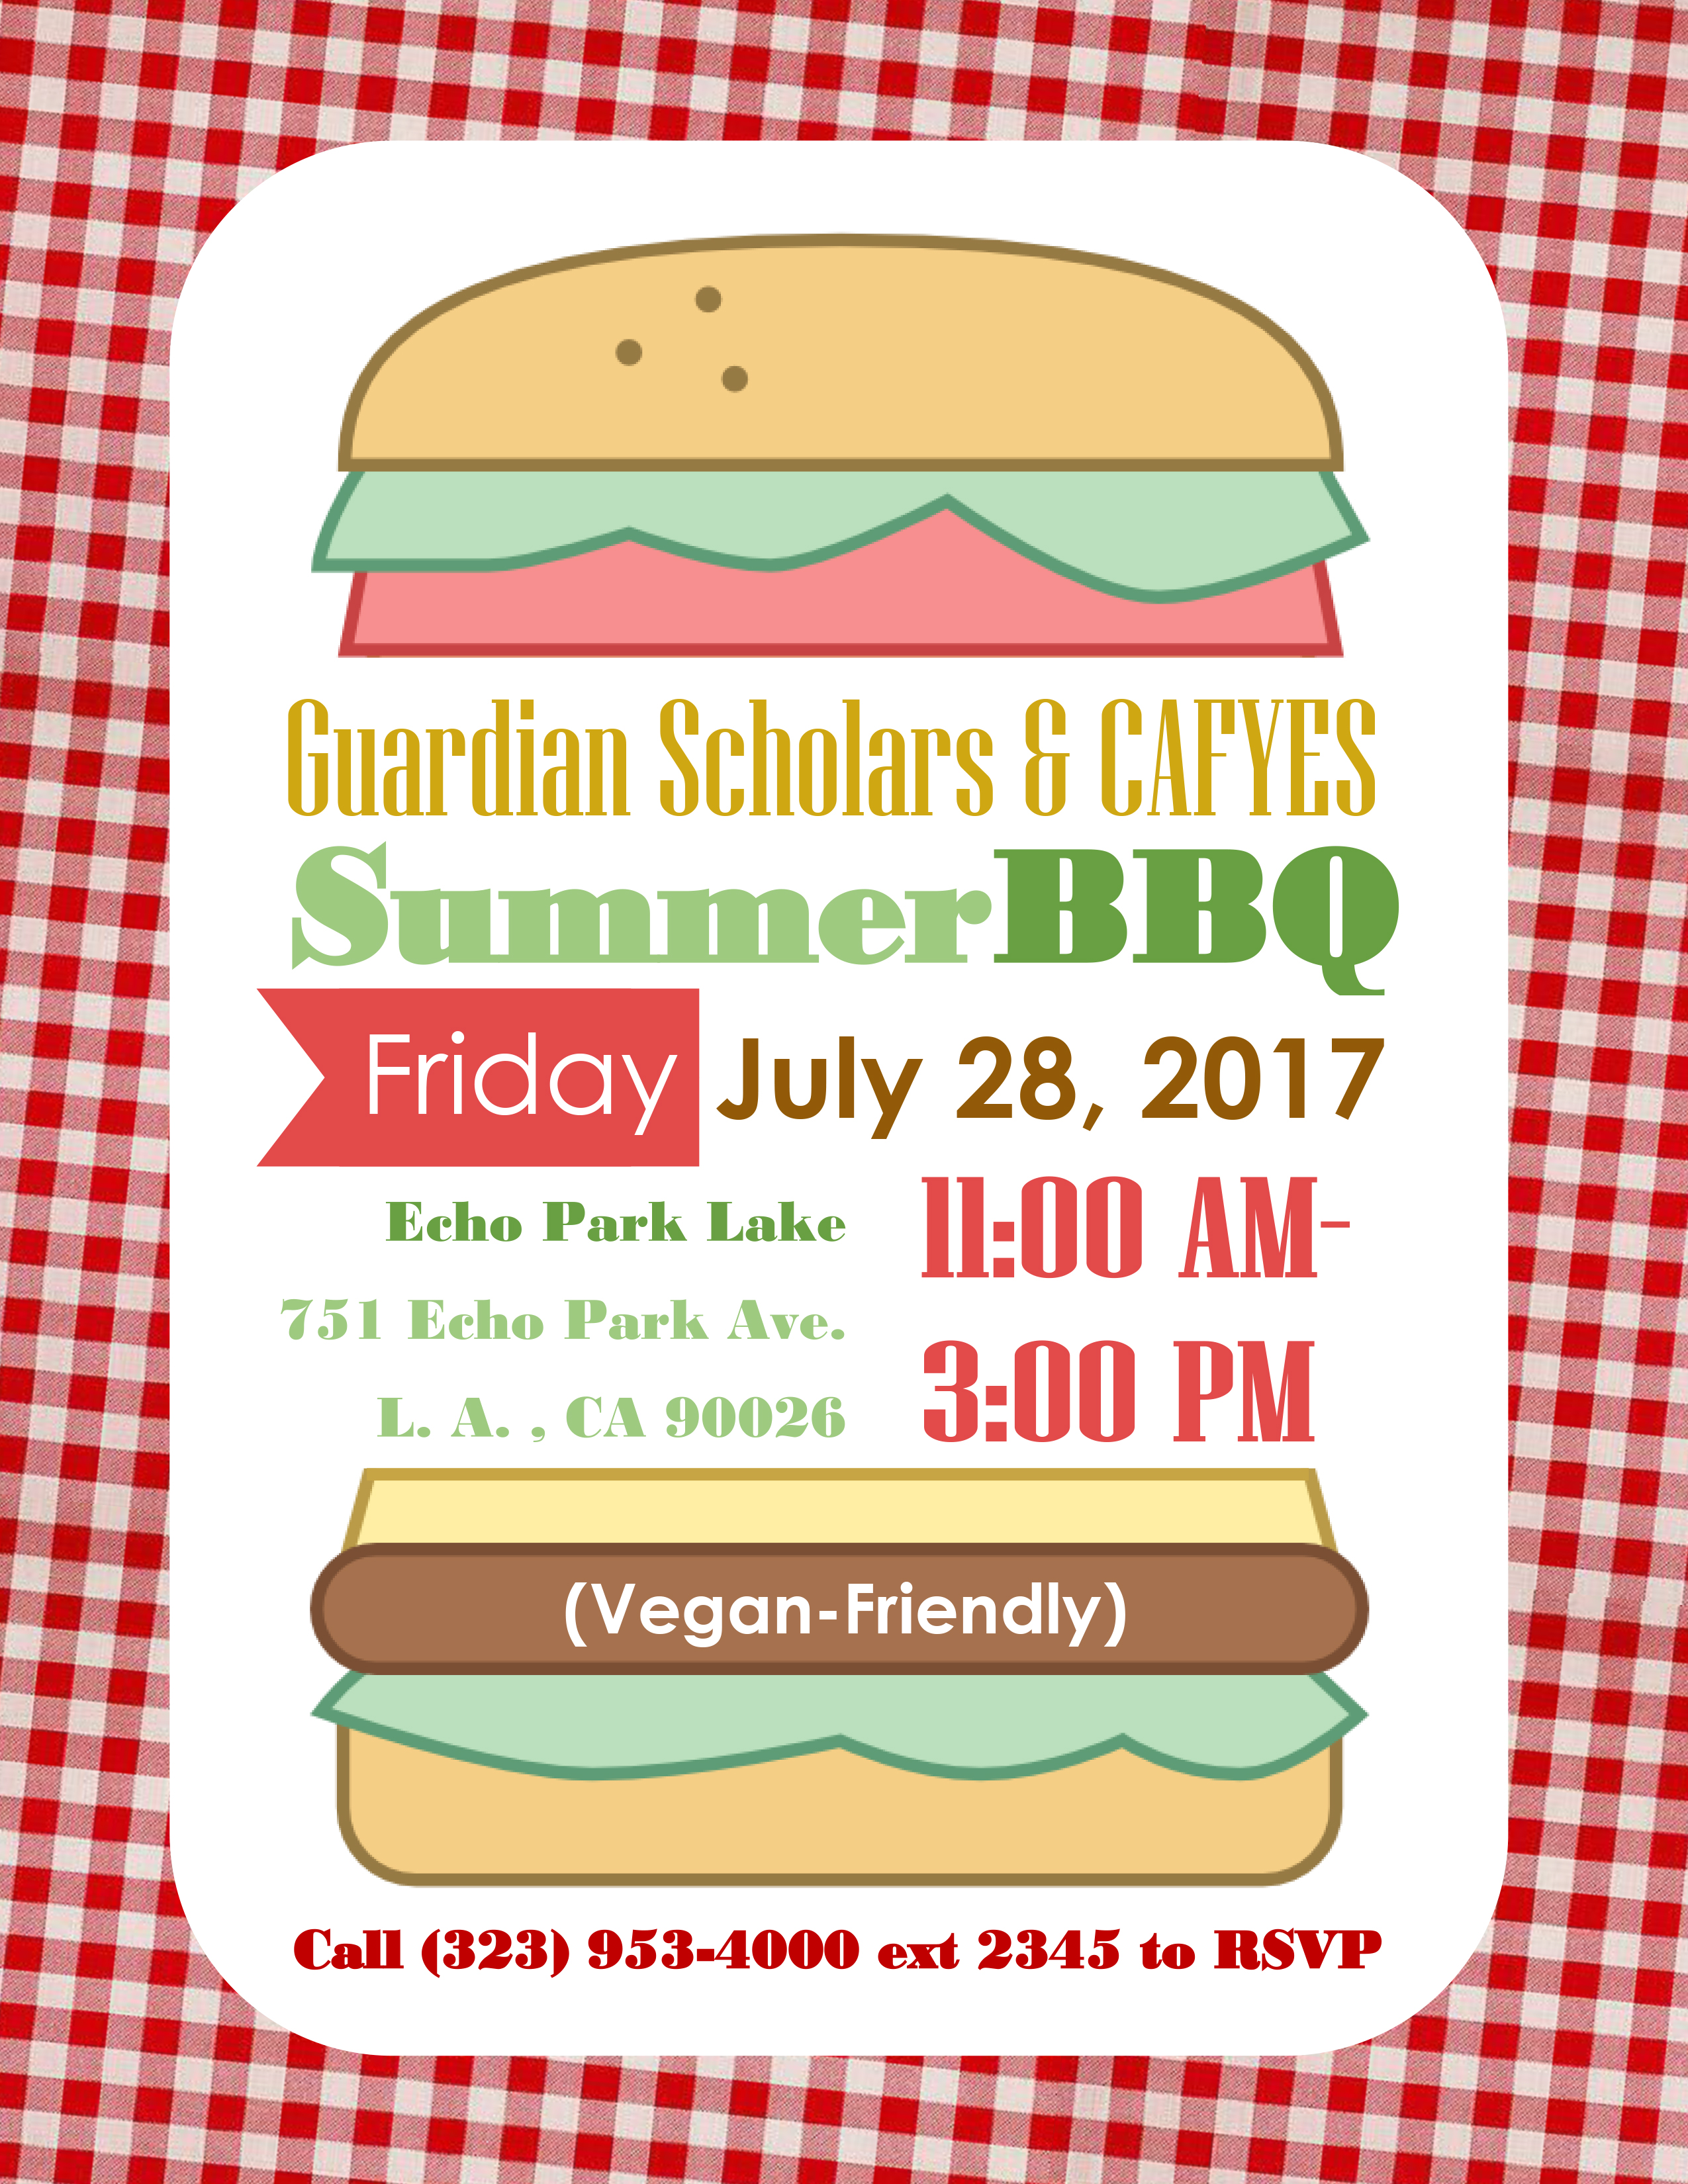 Our Summer Barbecue Flyer, with the date, Friday, July 28, time, 11:00 AM - 3:00 PM, and place, Echo Park Lake